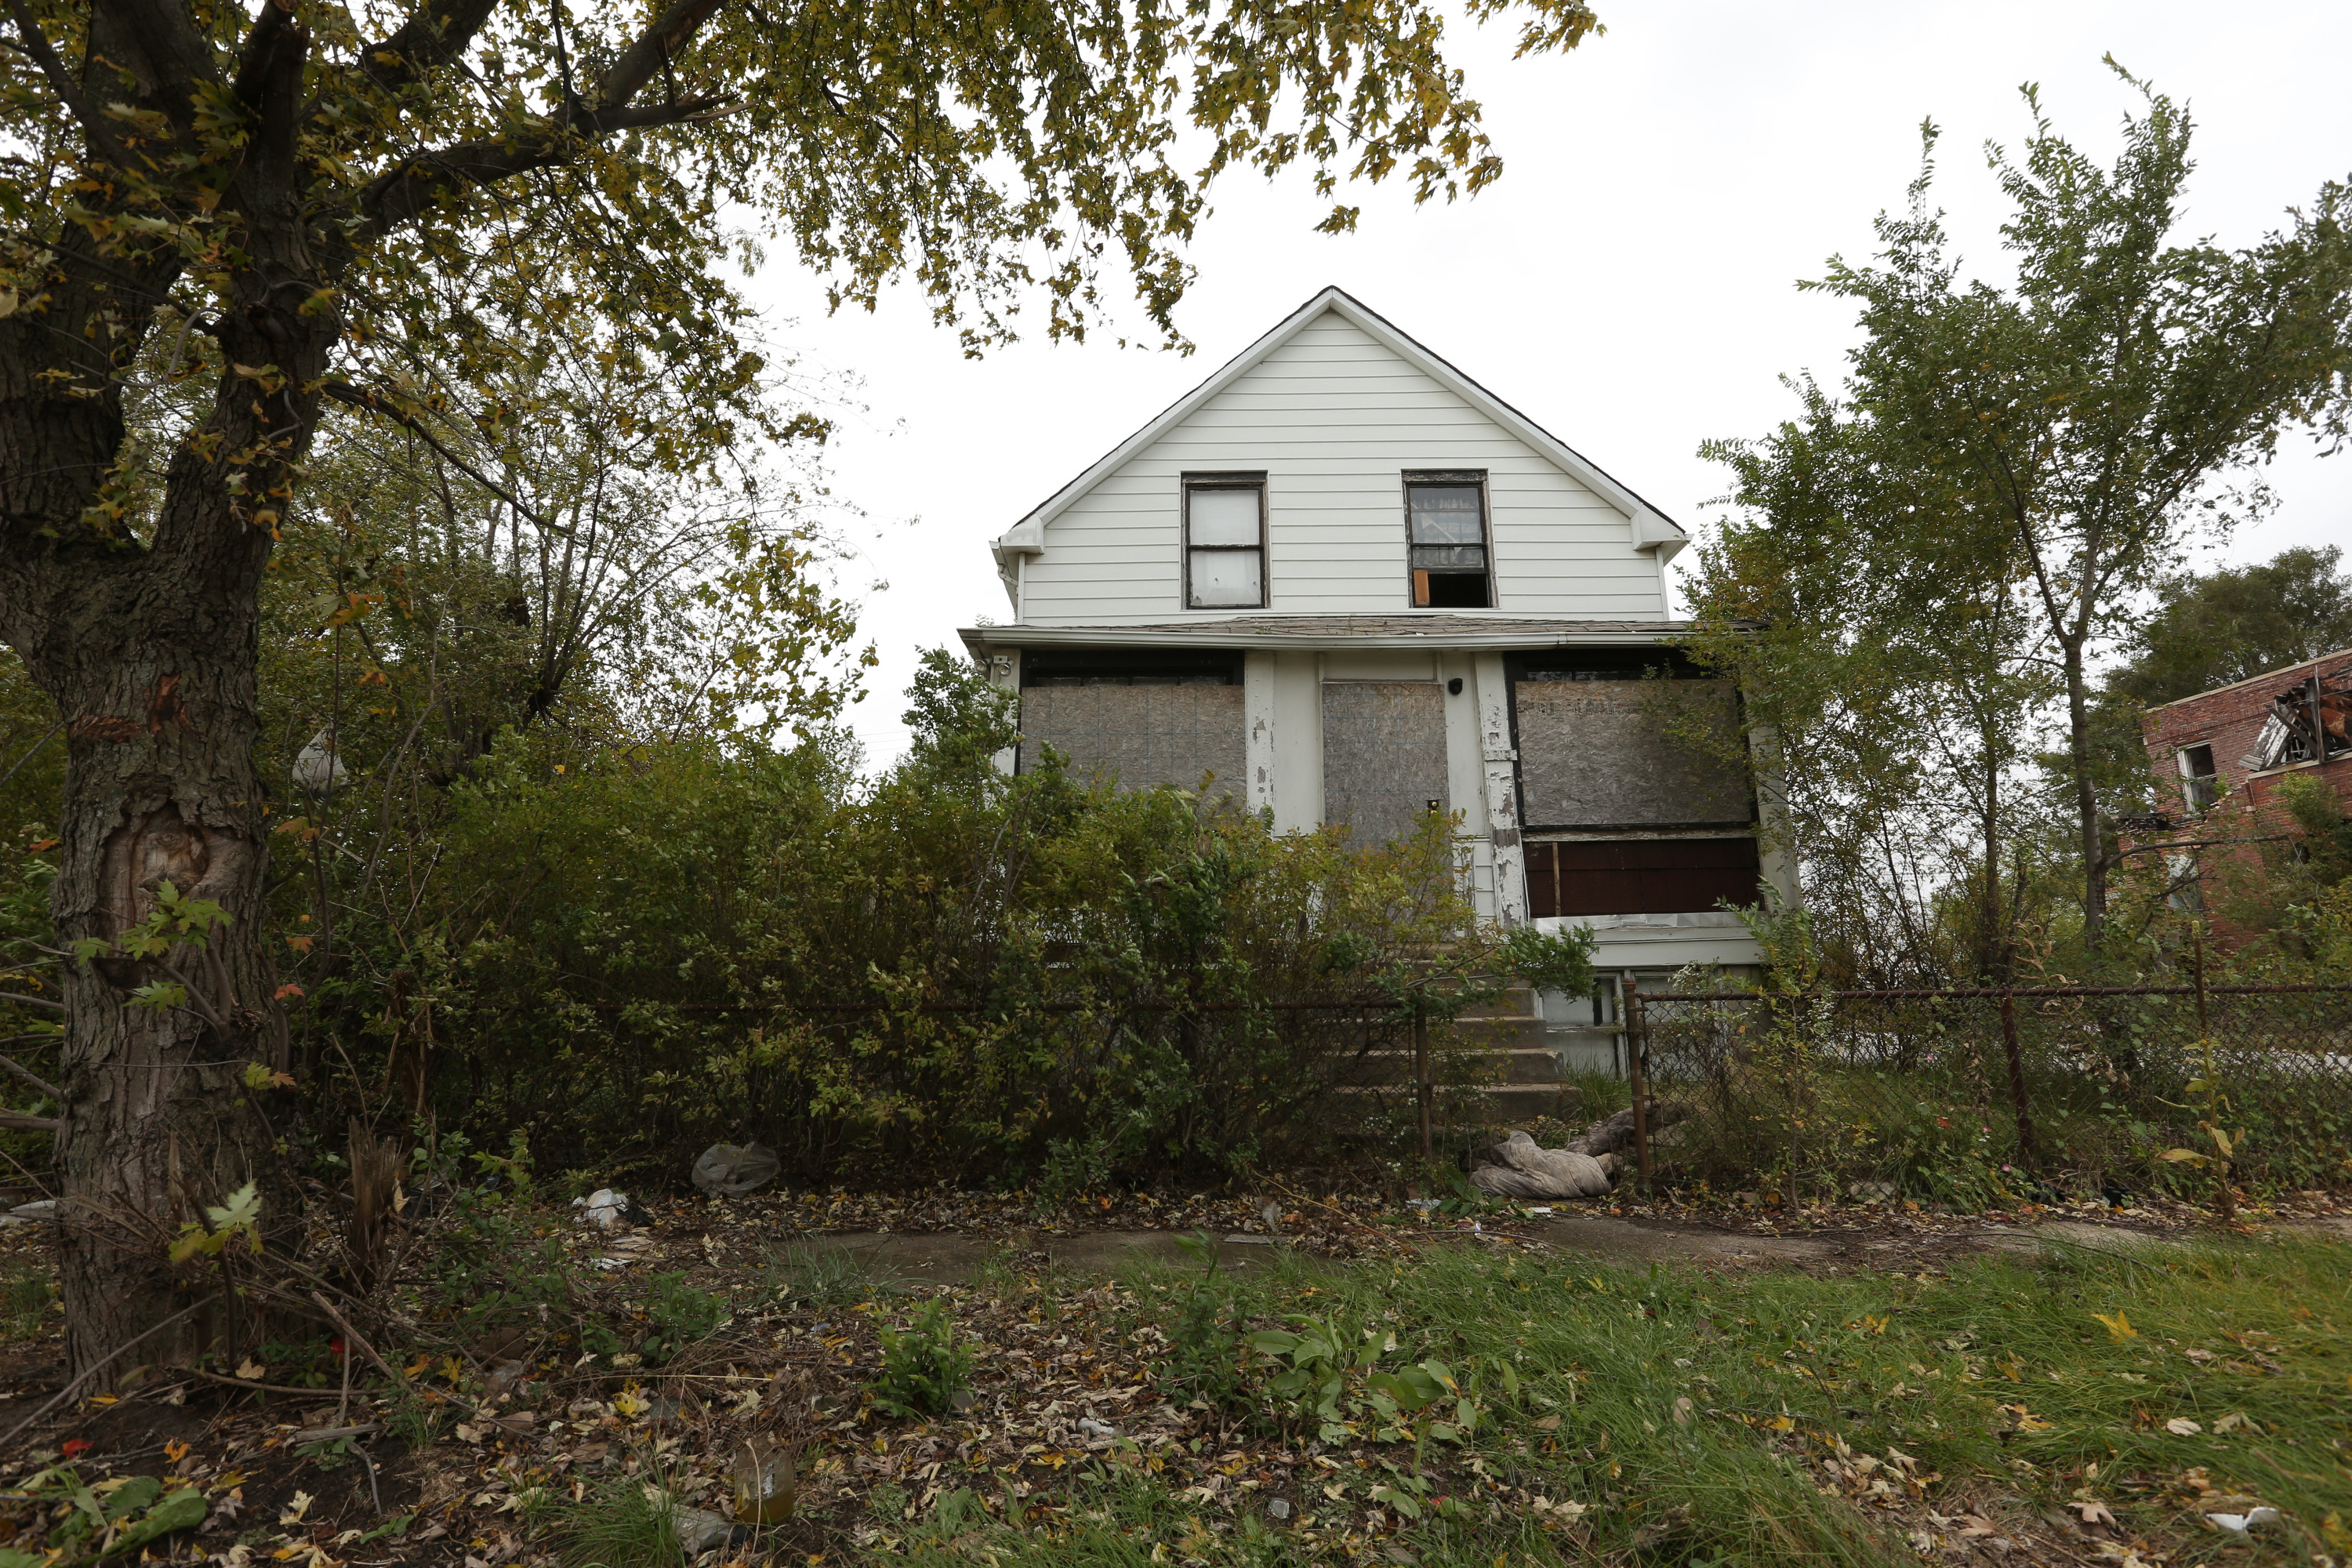 Potential Serial Killer In Indiana Linked To 4 Murders